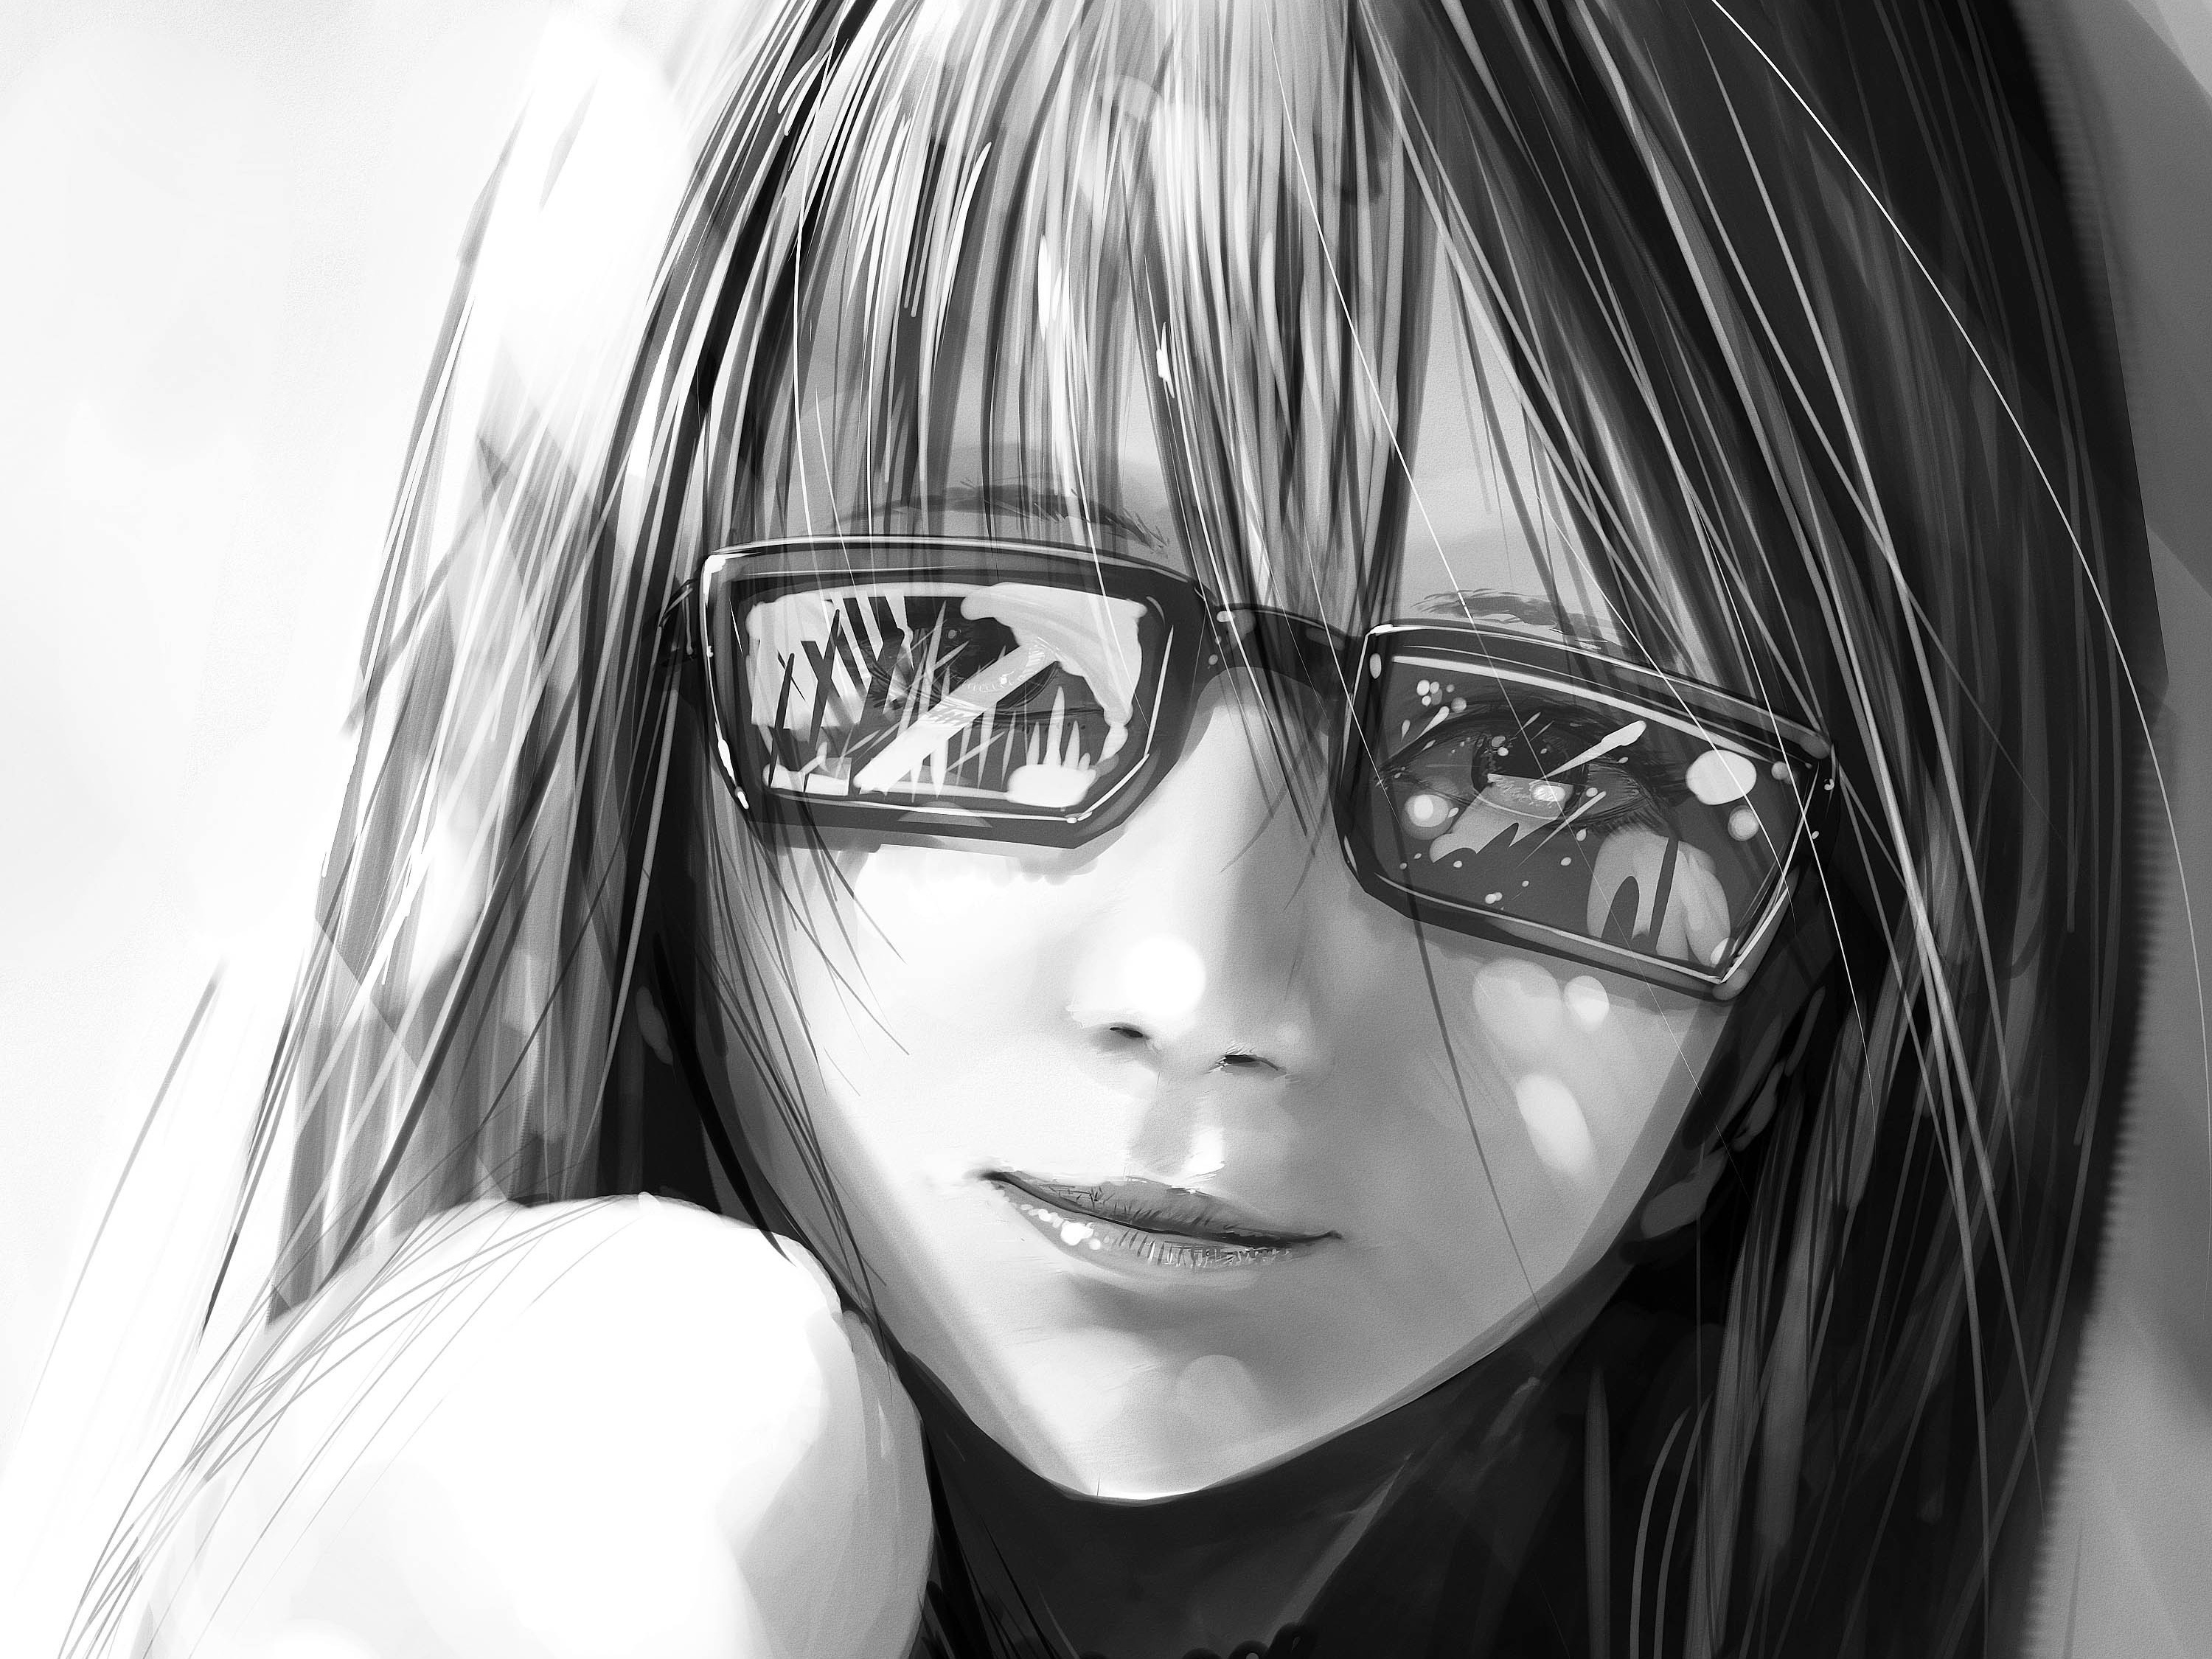 Wallpaper Anime Photo Picture Girl View Black And White Glasses Shoulder